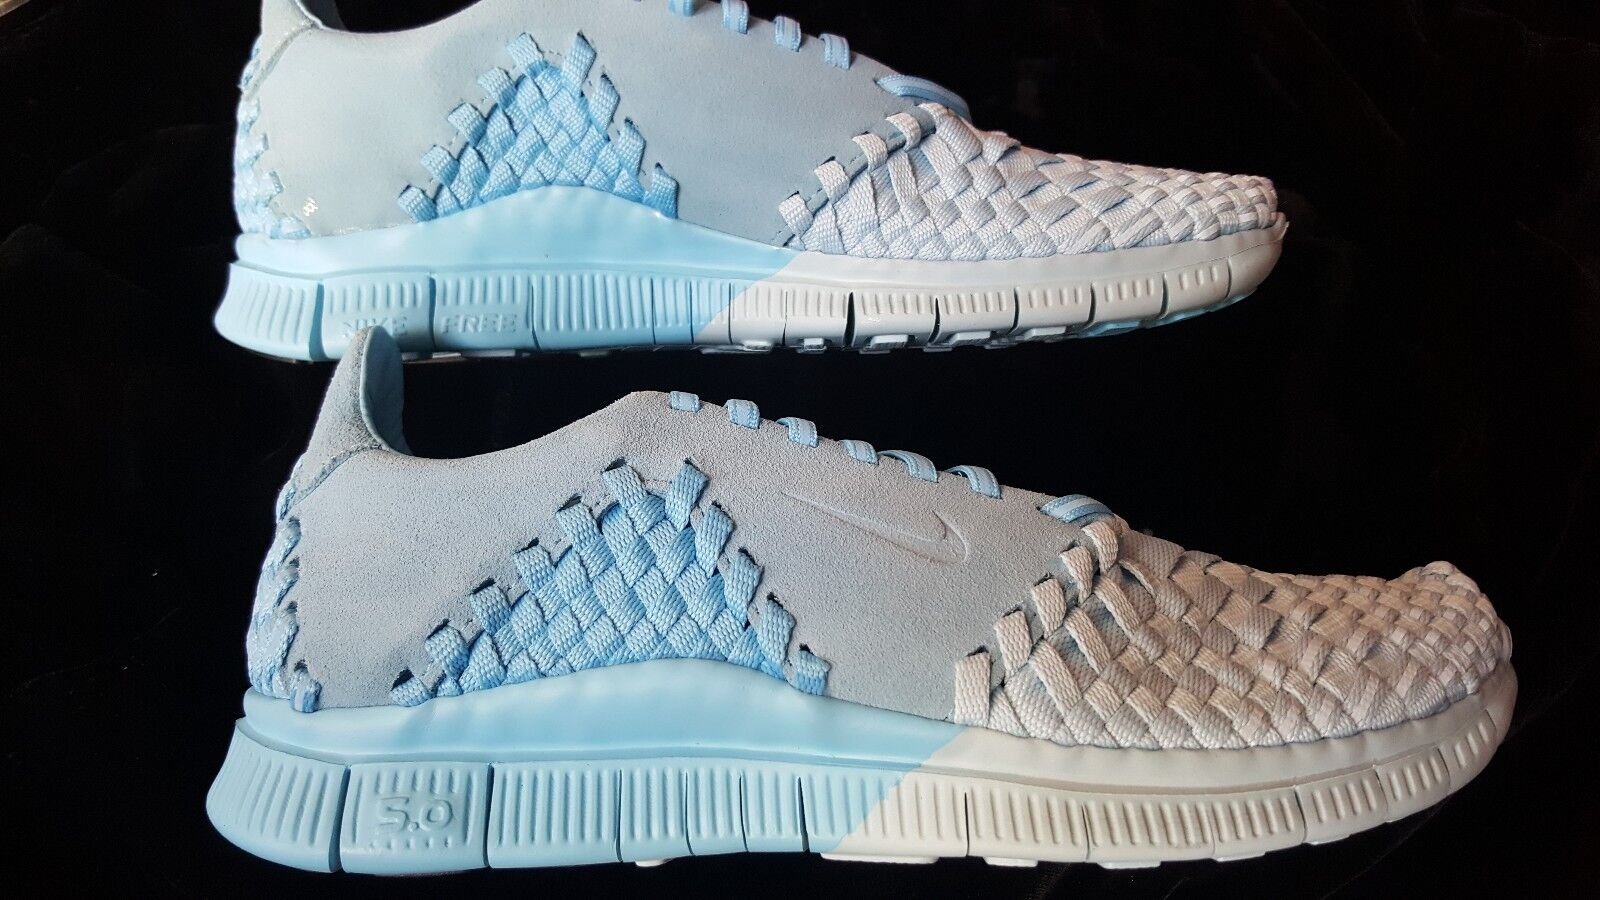 99e35196fd New NIKE MENS FREE INNEVA WOVEN SP LAKESIDE ICE Size 9.5 II ...